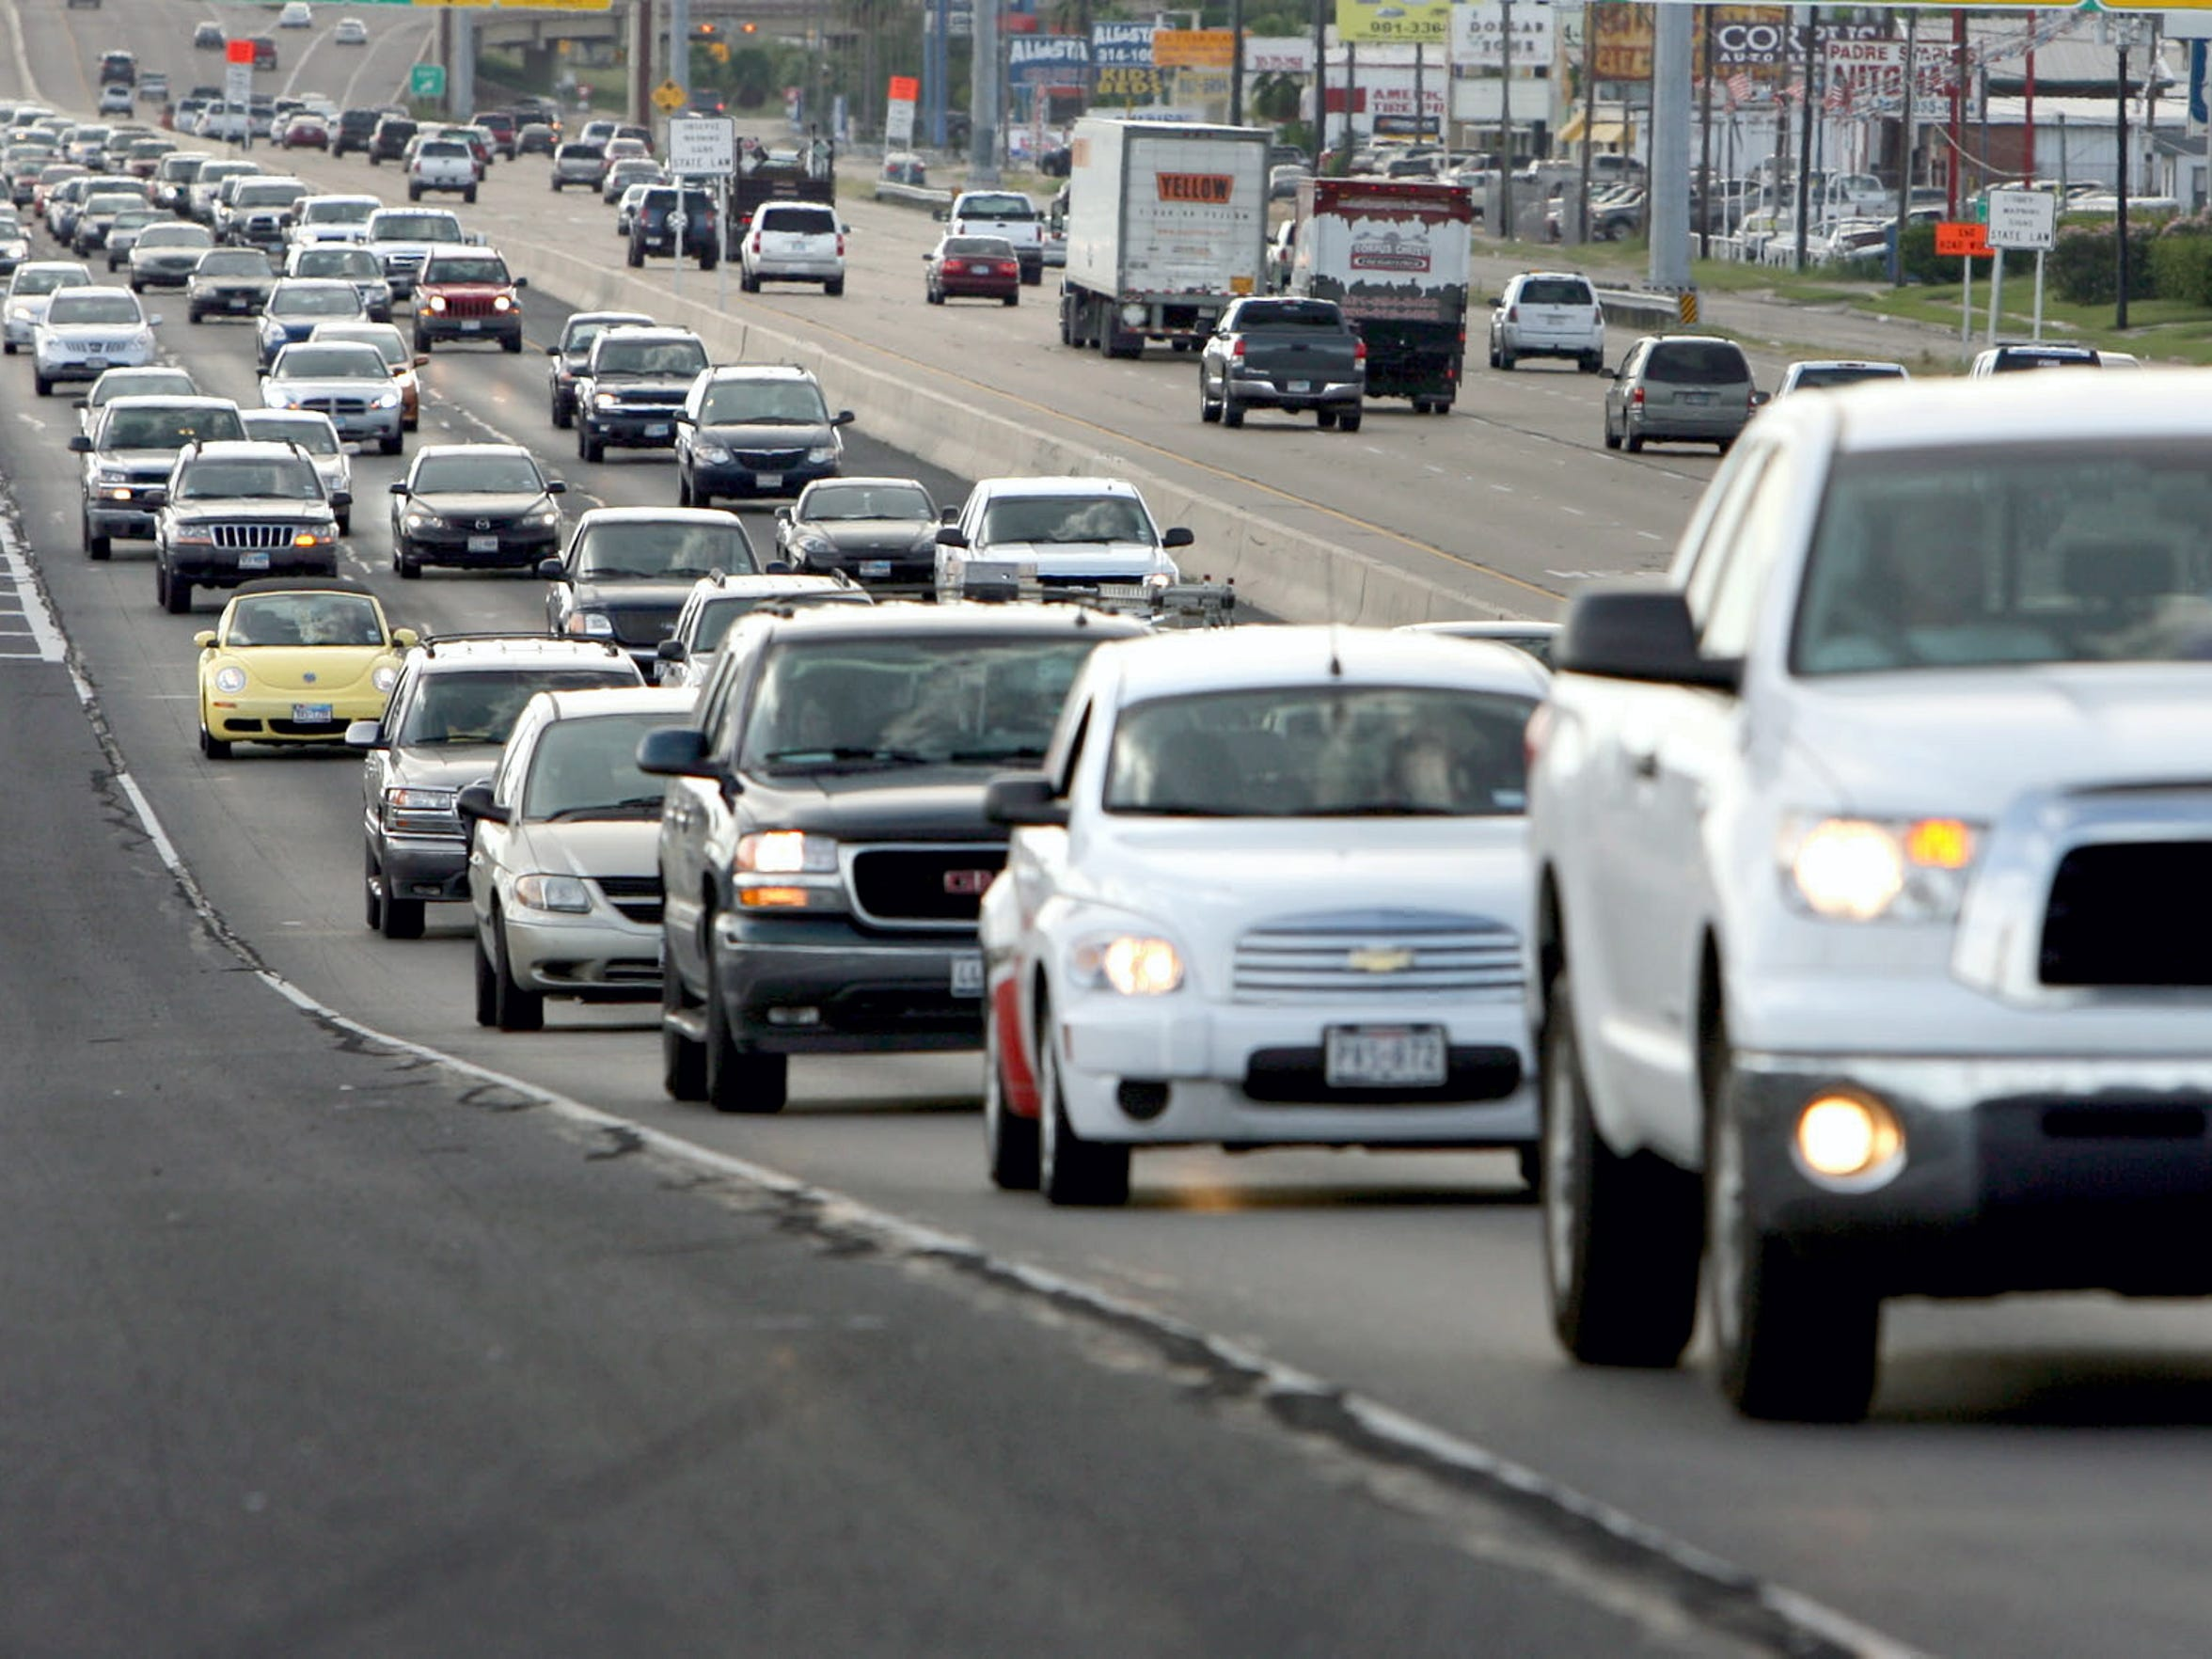 TODD YATES/CALLER-TIMES In this 2010 file photo, rush-hour